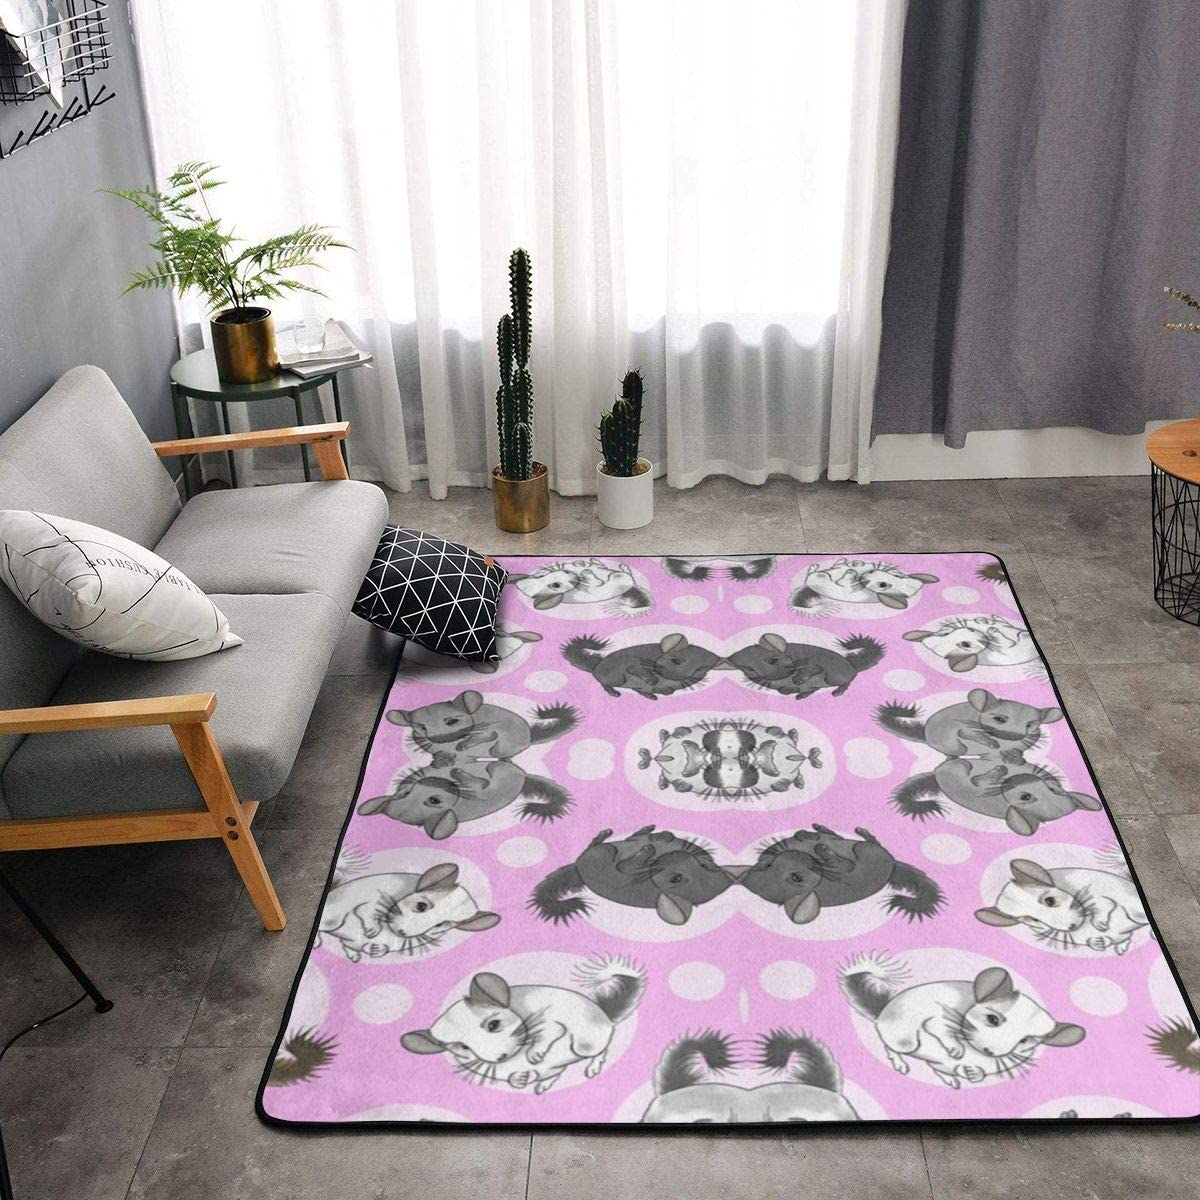 Fluffy Area Rug Modern Shag Rug Pads Fuzzy Nursery Carpet for Kids, Soft Plush Rugs for Living Room Children Bedroom Kitchen Home Decoration 60x36 in,Pink Chinchillas and Moon Dots